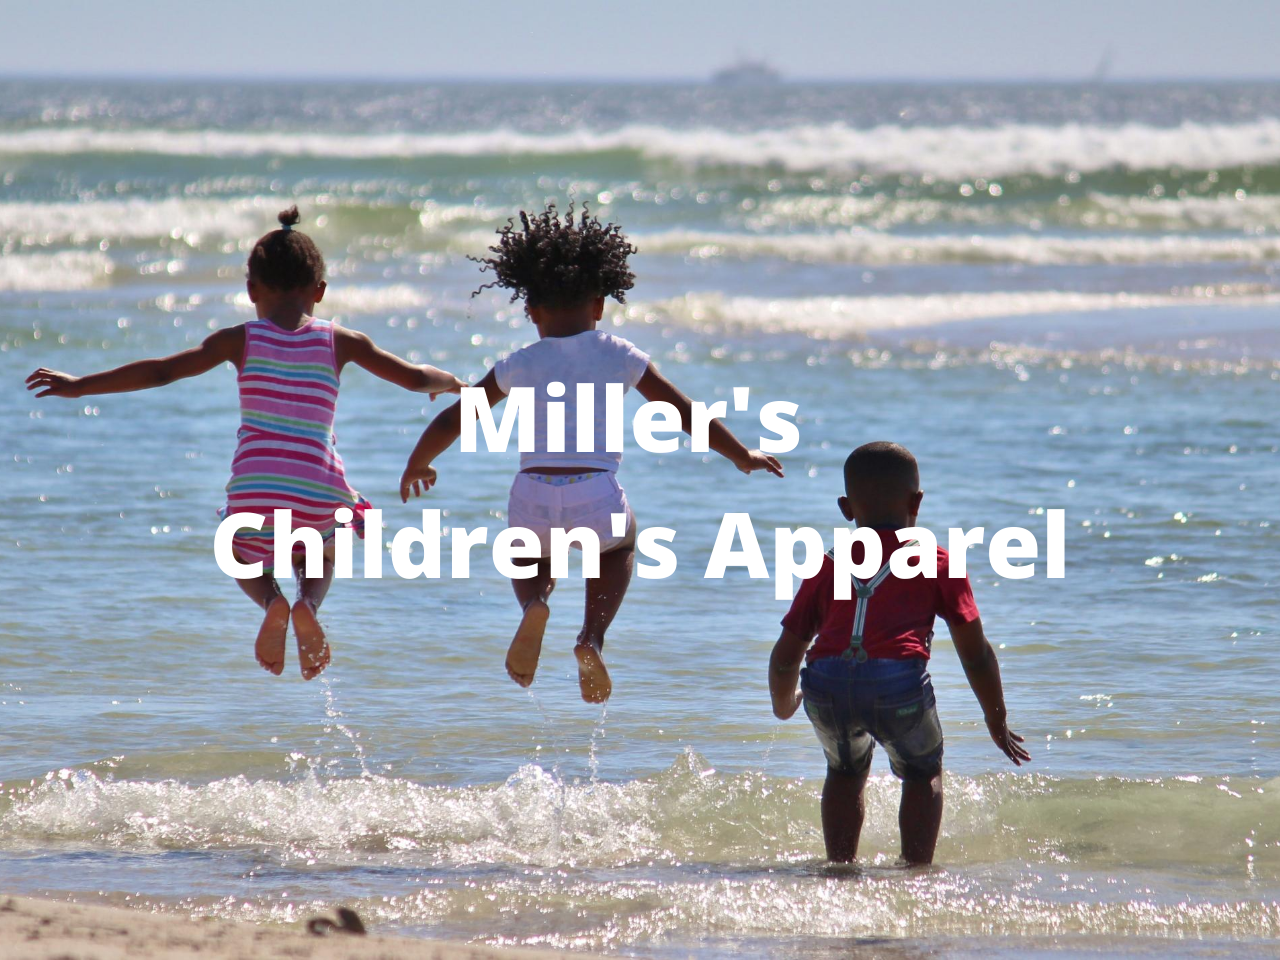 Miller's Children's Apparel